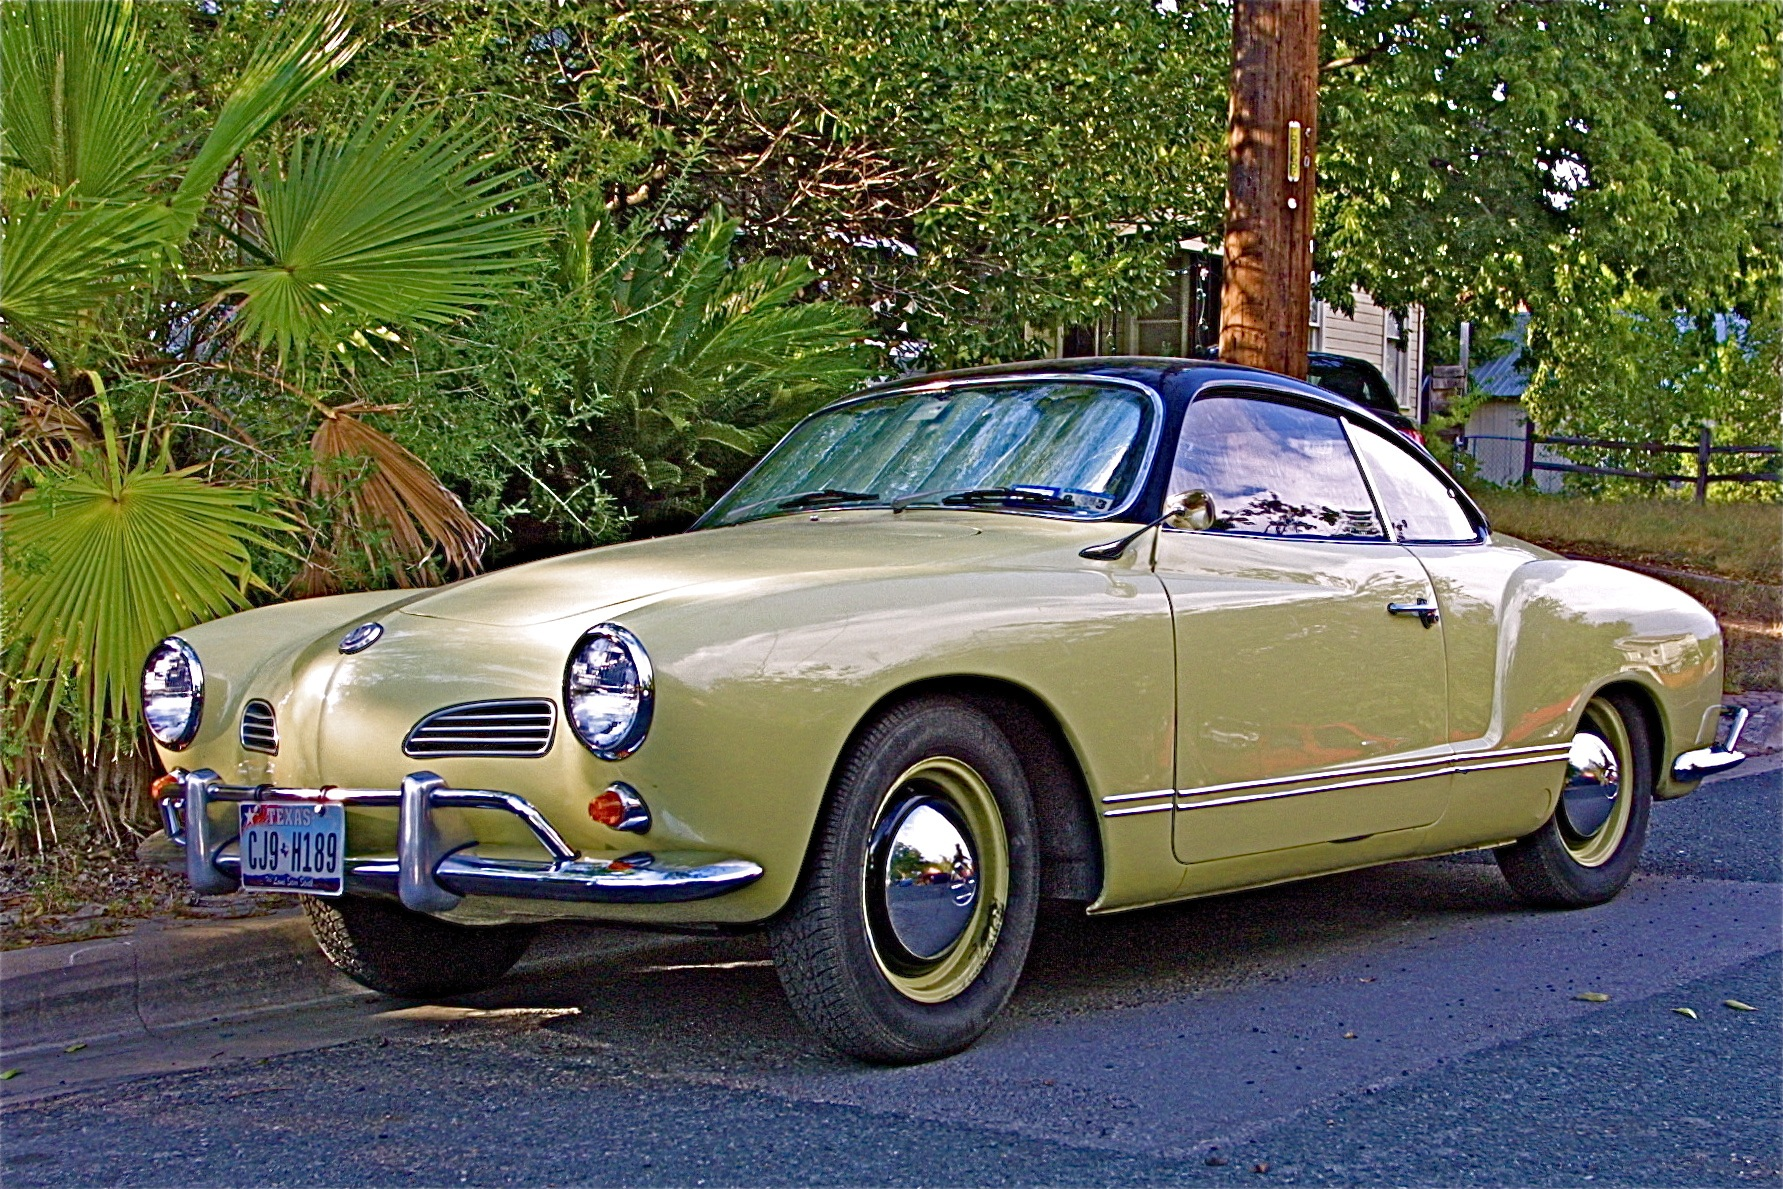 the ghia name click trading club fetch car karmann clubhouse volkswagen d for dsc post deforum size eircooled views forum id sale image version larger